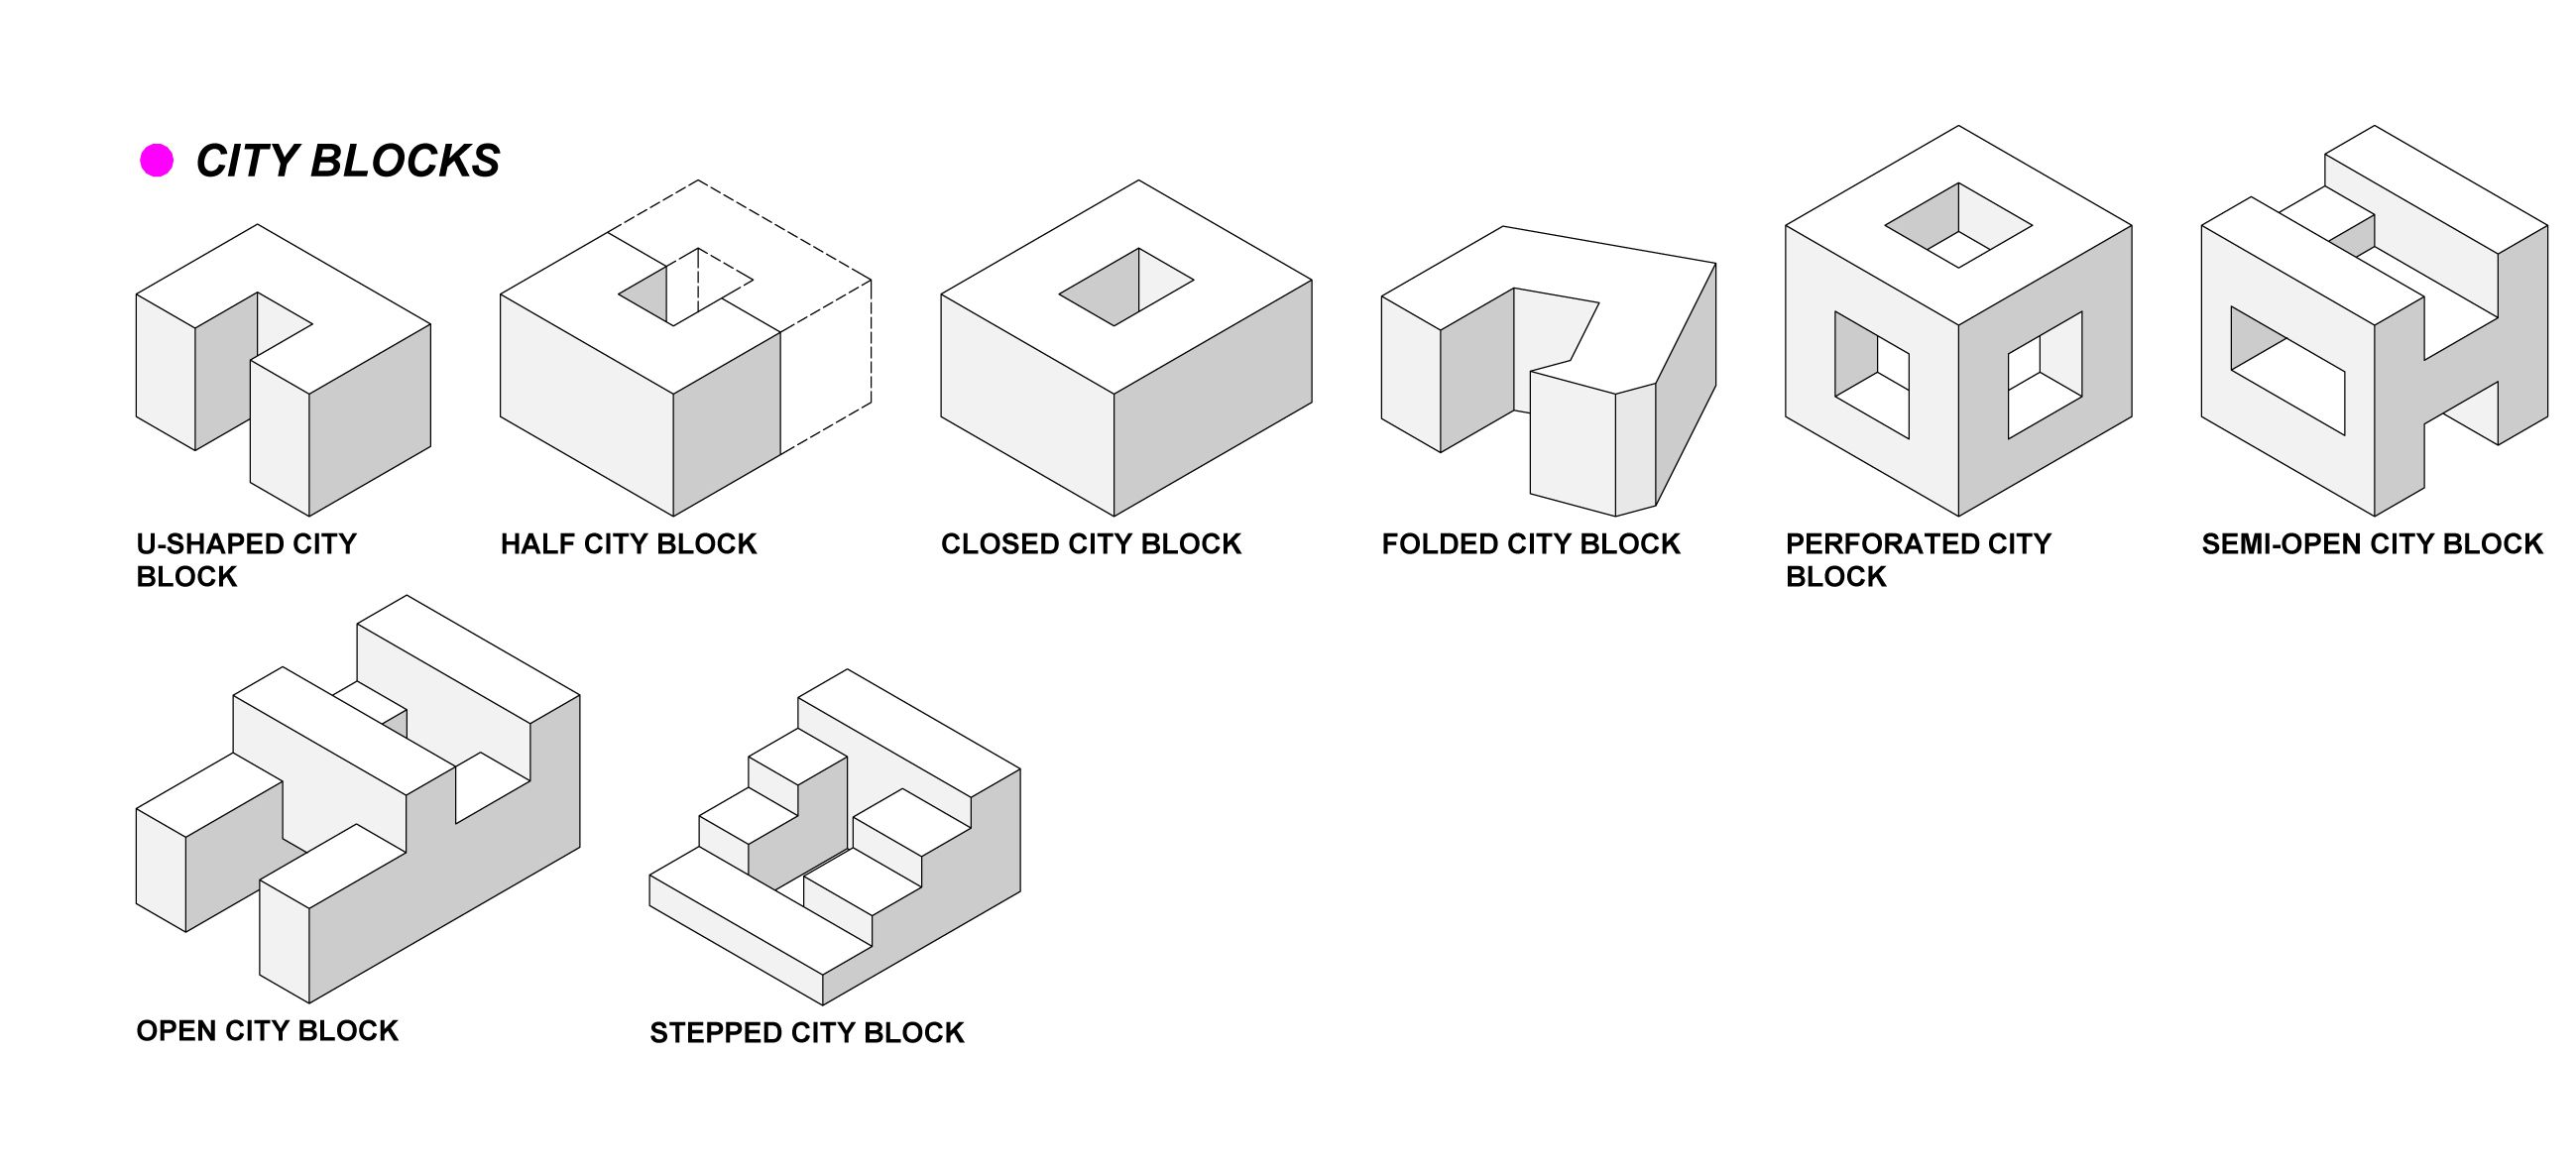 Block Typology